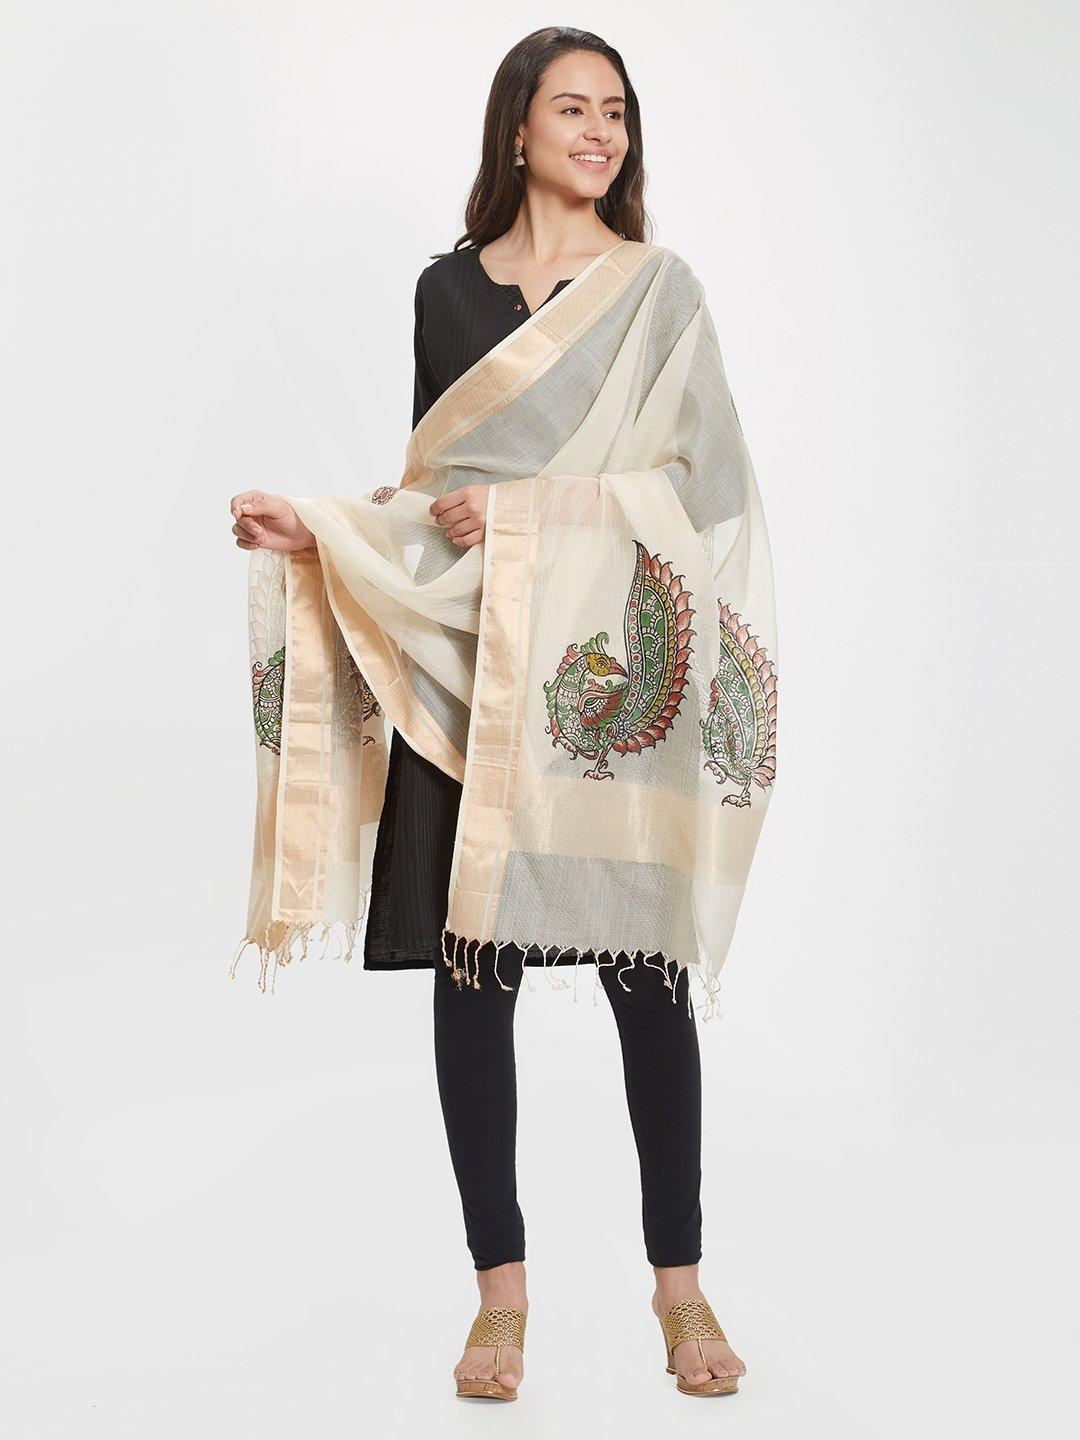 CraftsCollection.in - Beige Cotton Dupatta with handpainted Kalamkari motifs